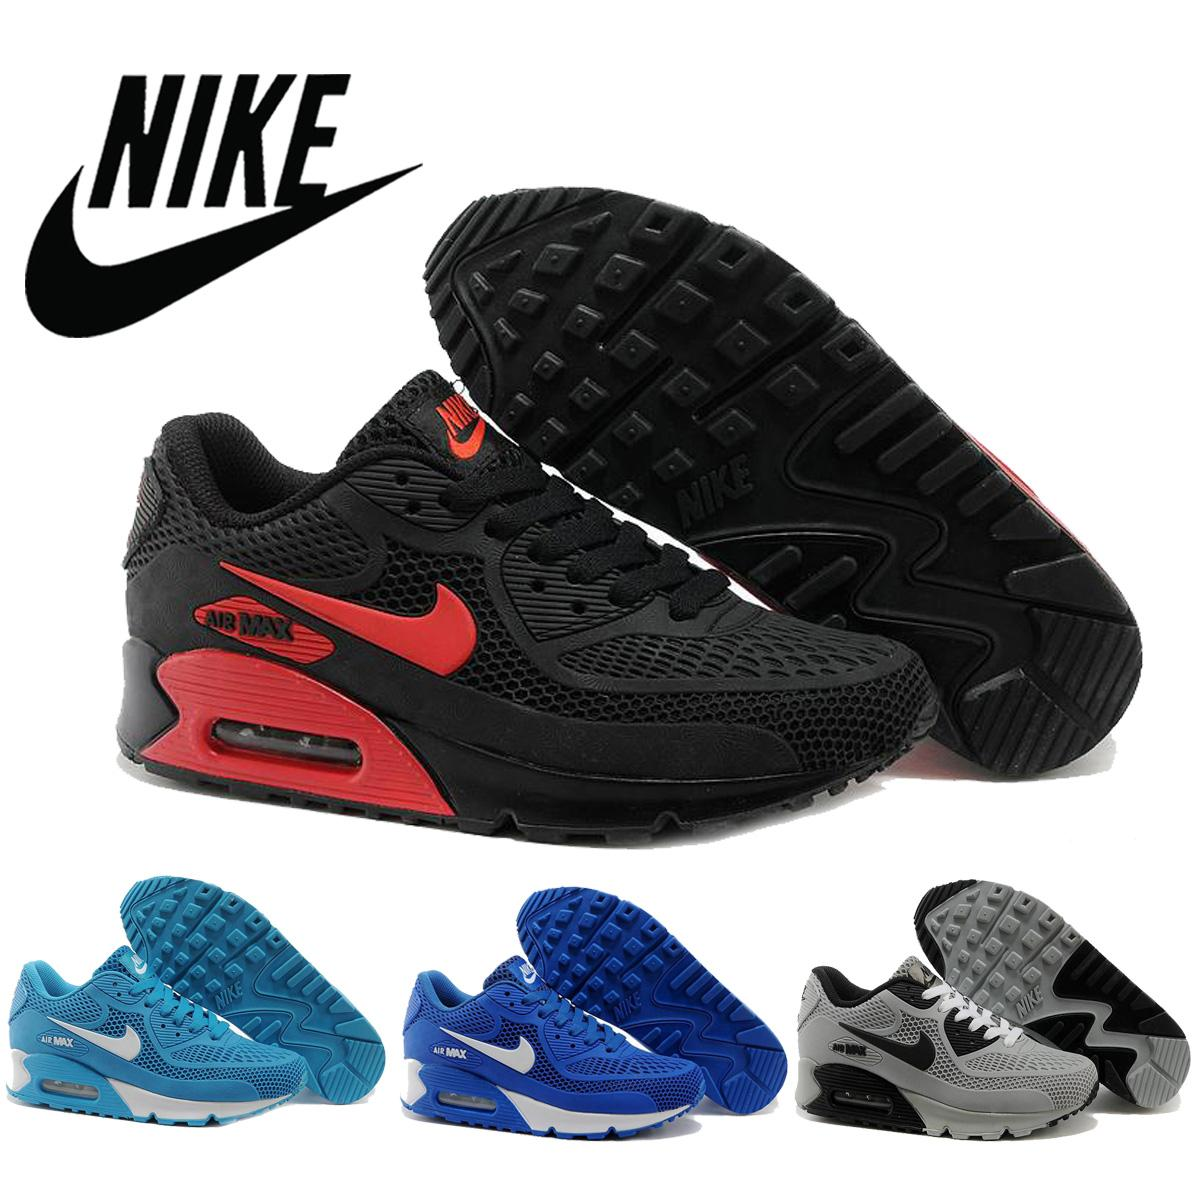 best authentic e8594 f9fa1 Nike Air Max 90 KPU TPU Men S Running Shoes Air Max 90 Hyperfuse Womens  Sneakers Athletic Shoes Sports Shoes Running Shoes From Bestsportcentre, ...